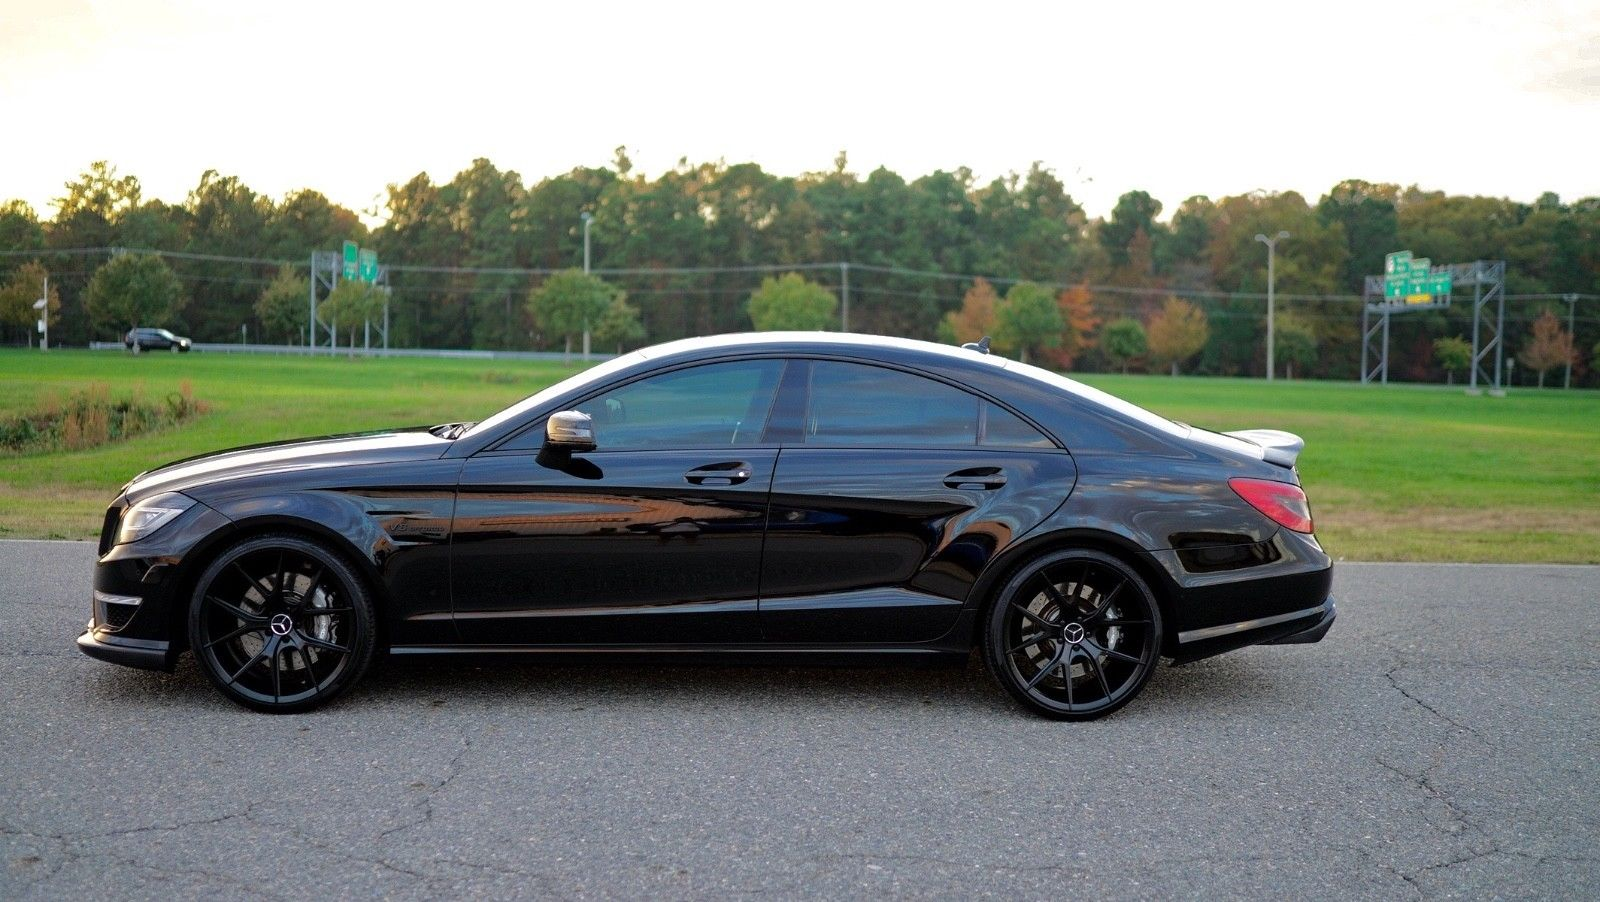 2012 mercedes benz w218 cls63 amg on r22 black wheels. Black Bedroom Furniture Sets. Home Design Ideas